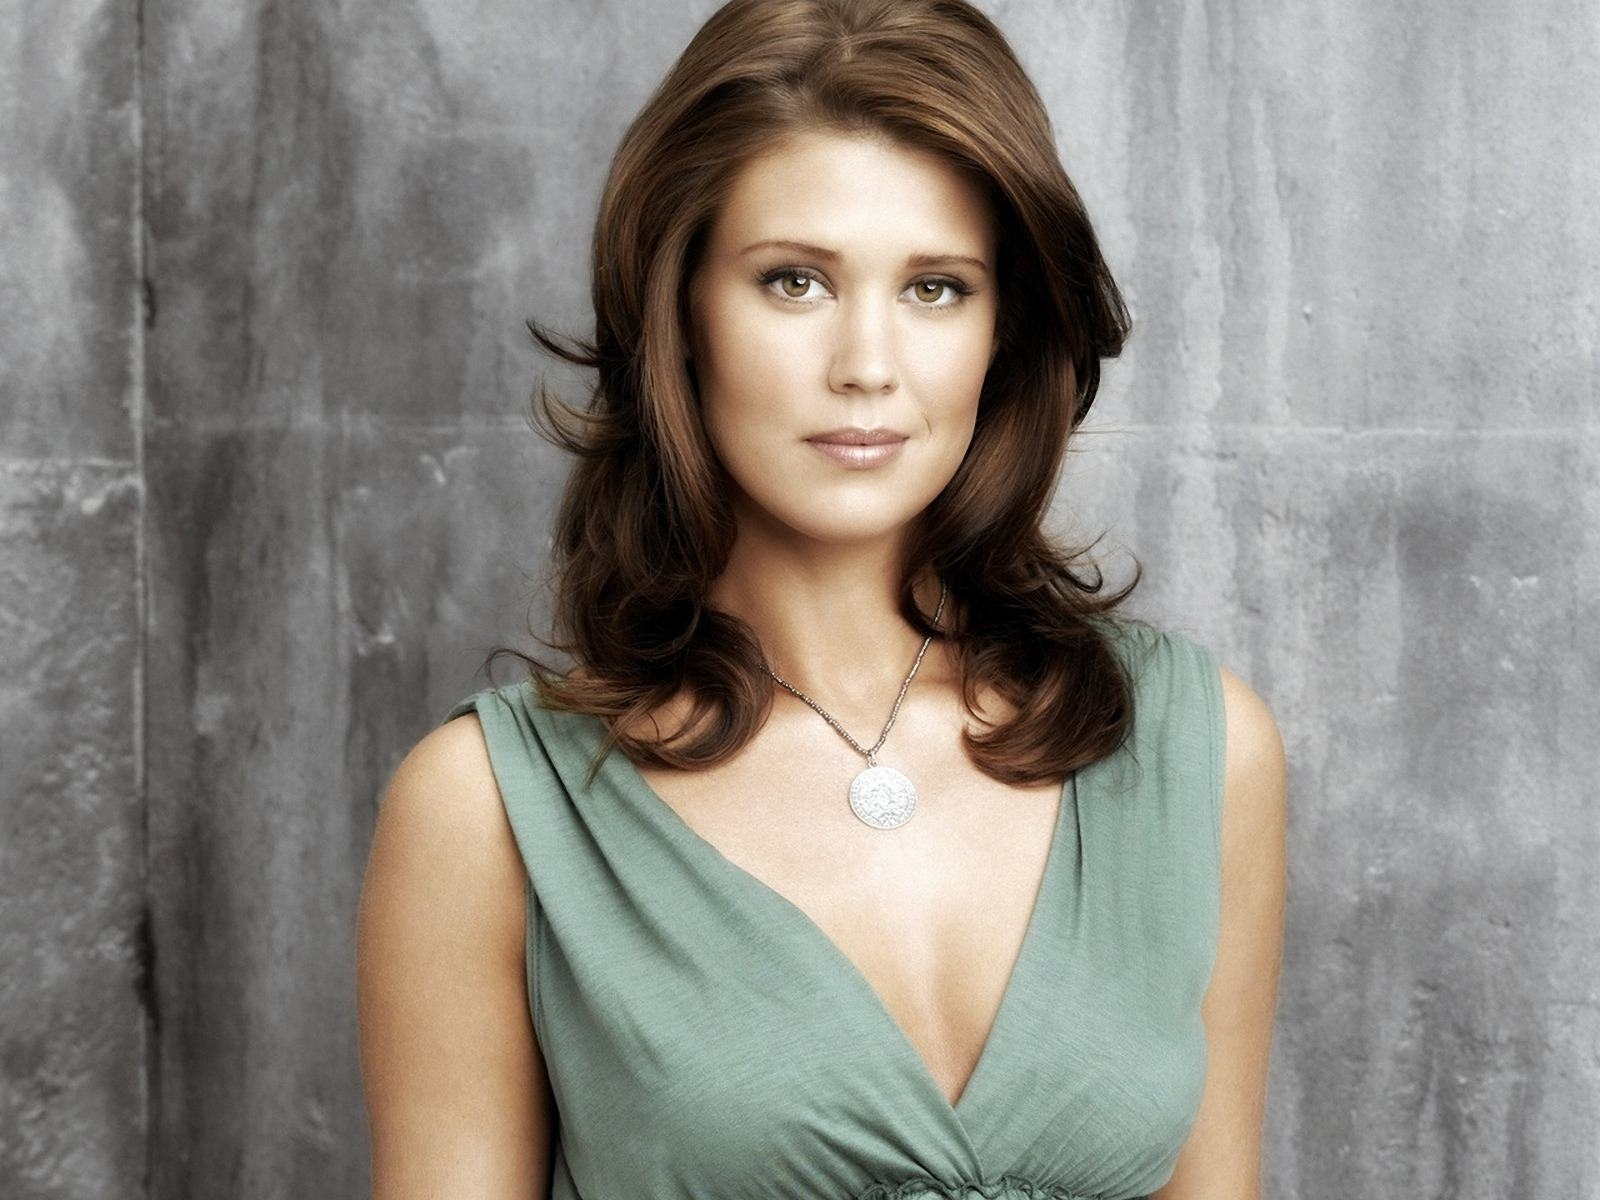 Wallpapers Backgrounds   Sarah Lancaster Gorgeous wallpapers stock 1600x1200